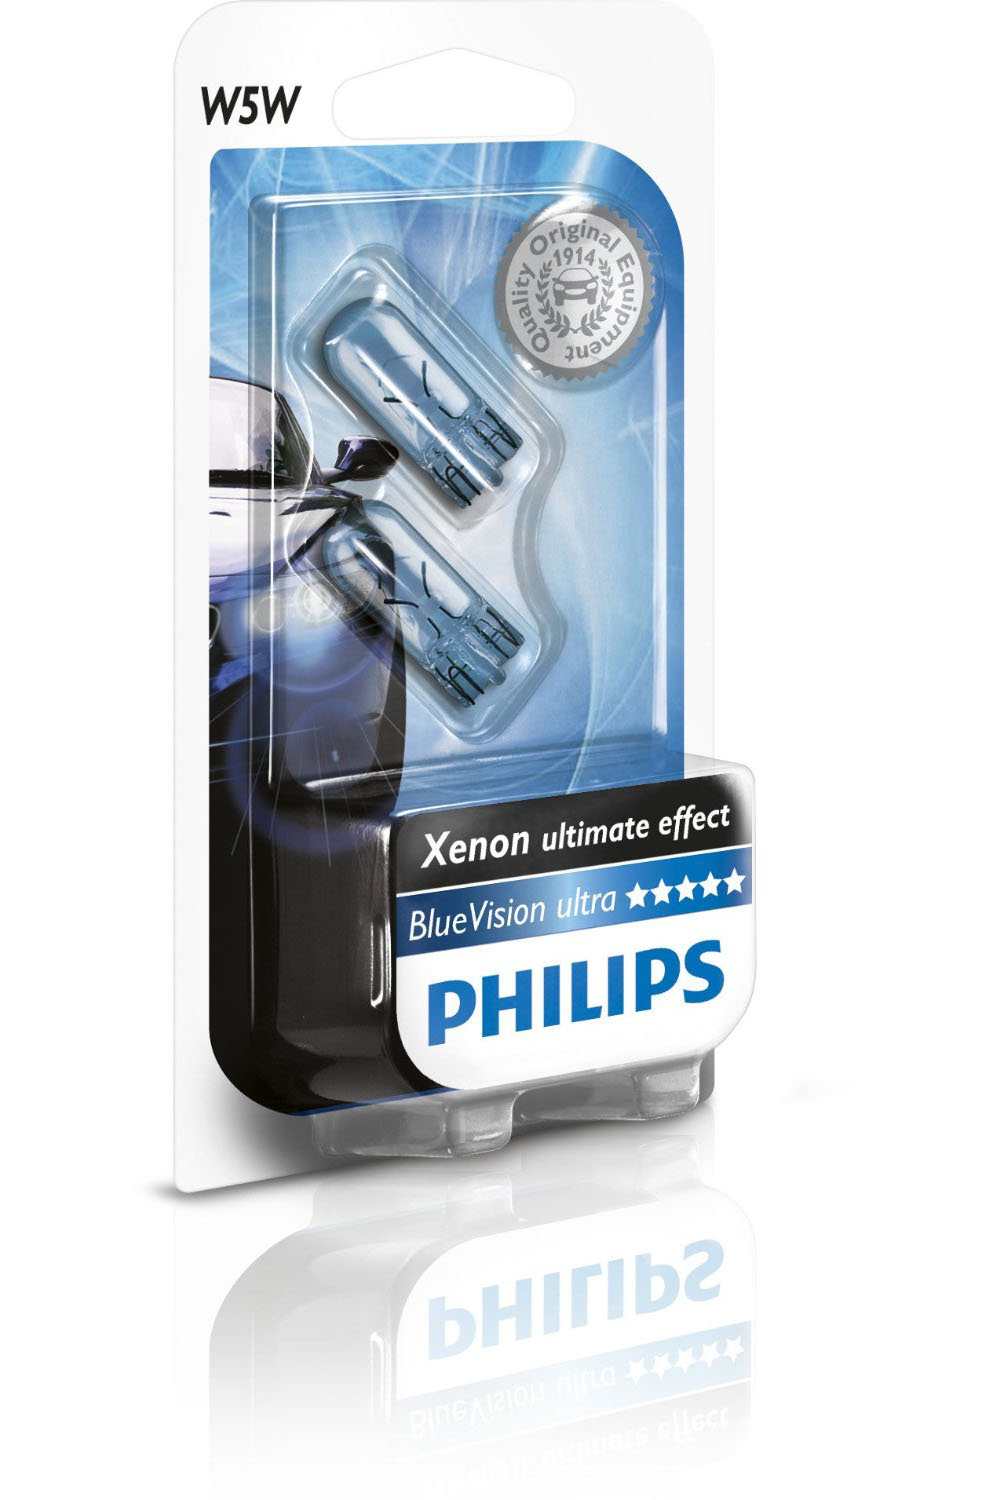 pack 2 ampoules w5w philips blue vision ultra 5w yakaequiper. Black Bedroom Furniture Sets. Home Design Ideas